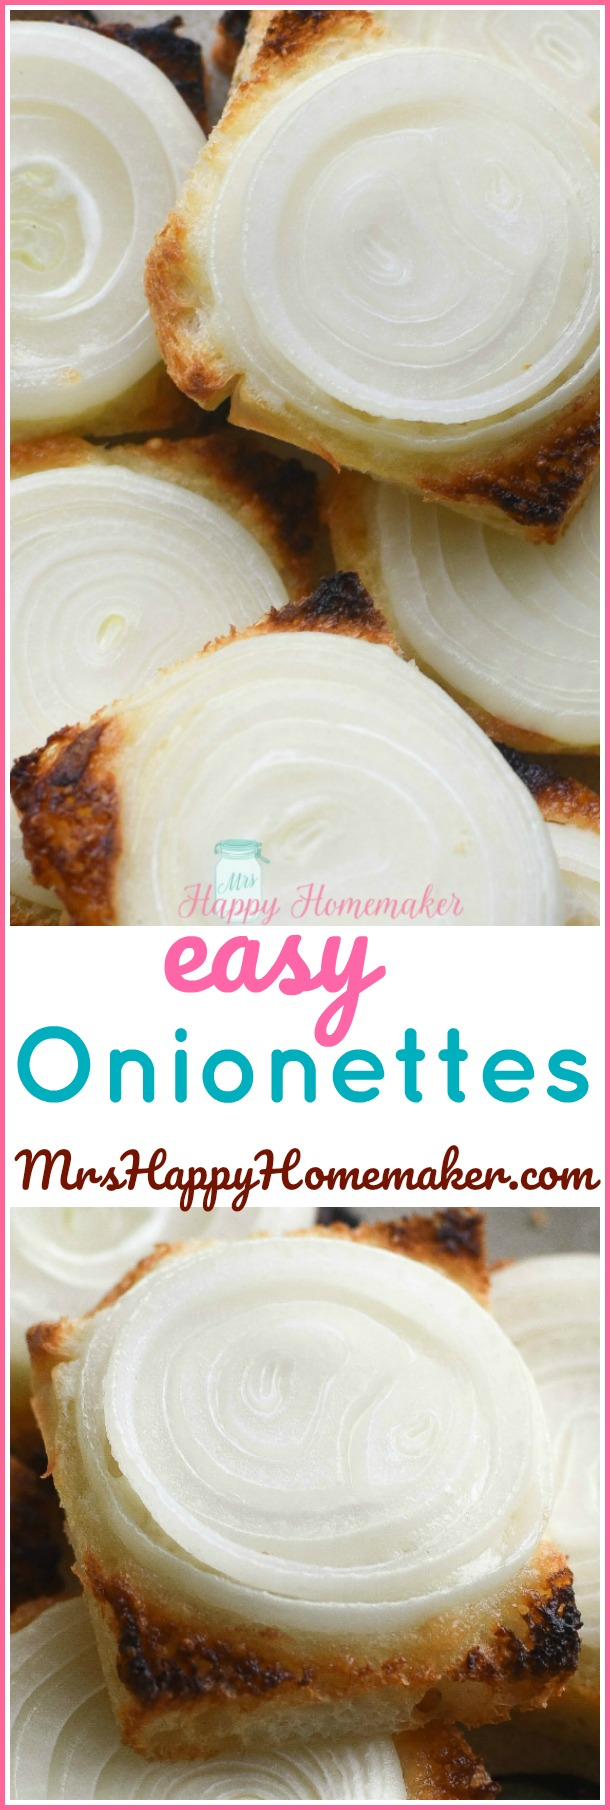 Today I'm sharing with y'all one of my favorite recipes - EASY ONIONETTES. I've been making these regularly for over 20 years. 4 ingredients & just a few minutes is all you need!